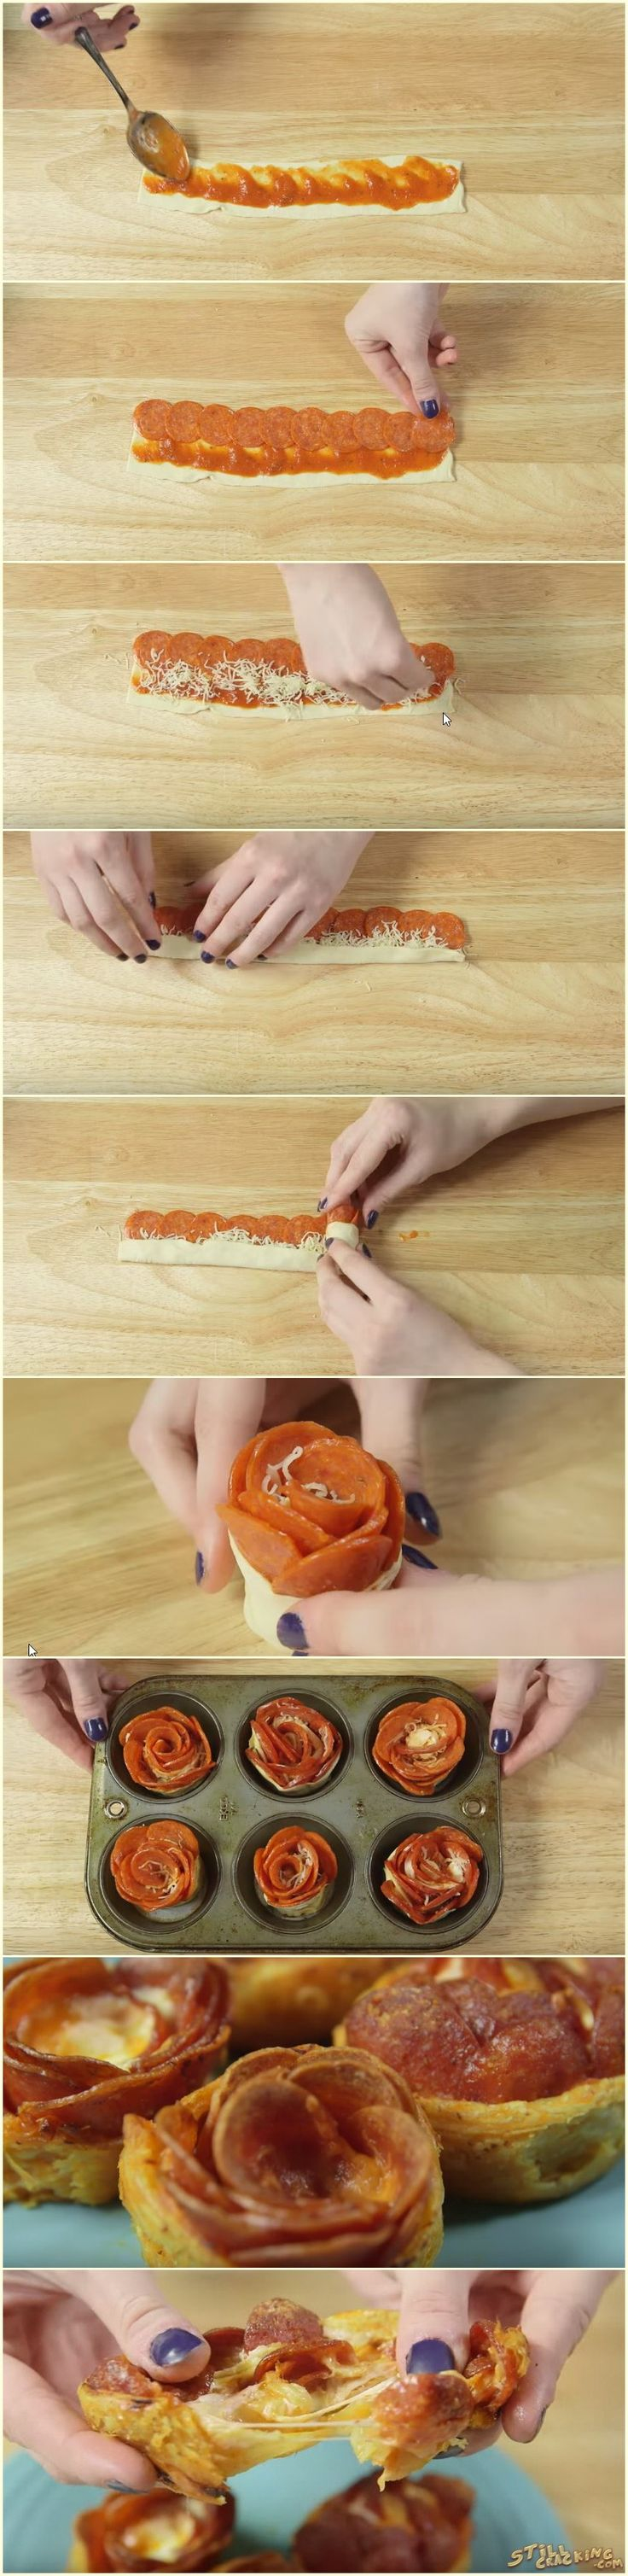 Pepperoni And Cheese Pizza Roses